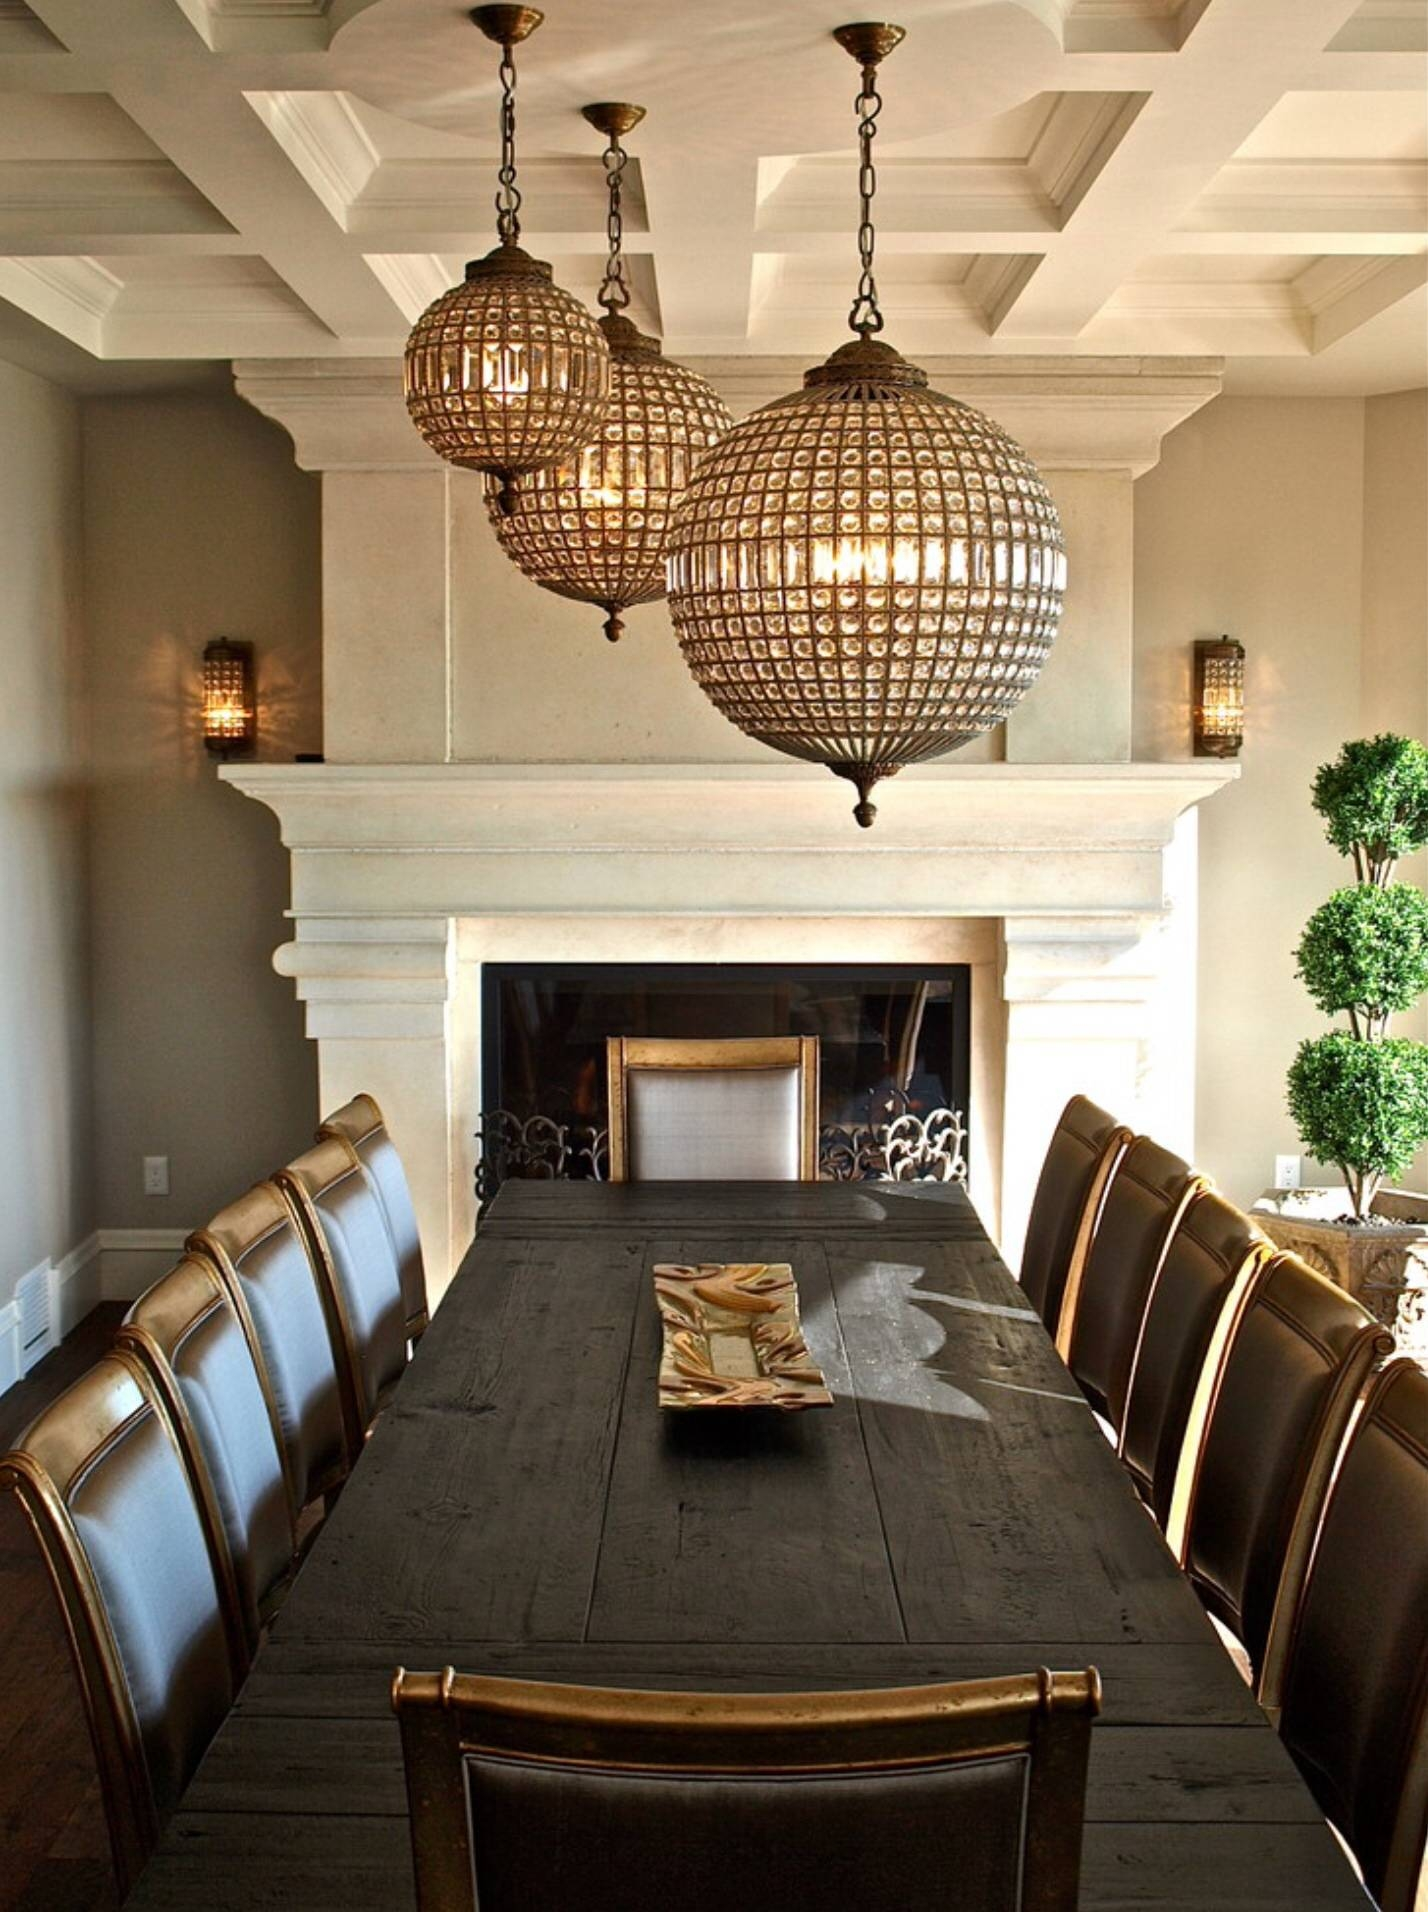 Restoration Hardware Light Fixtures All About House Design : How throughout Restoration Hardware Pendants (Image 8 of 15)